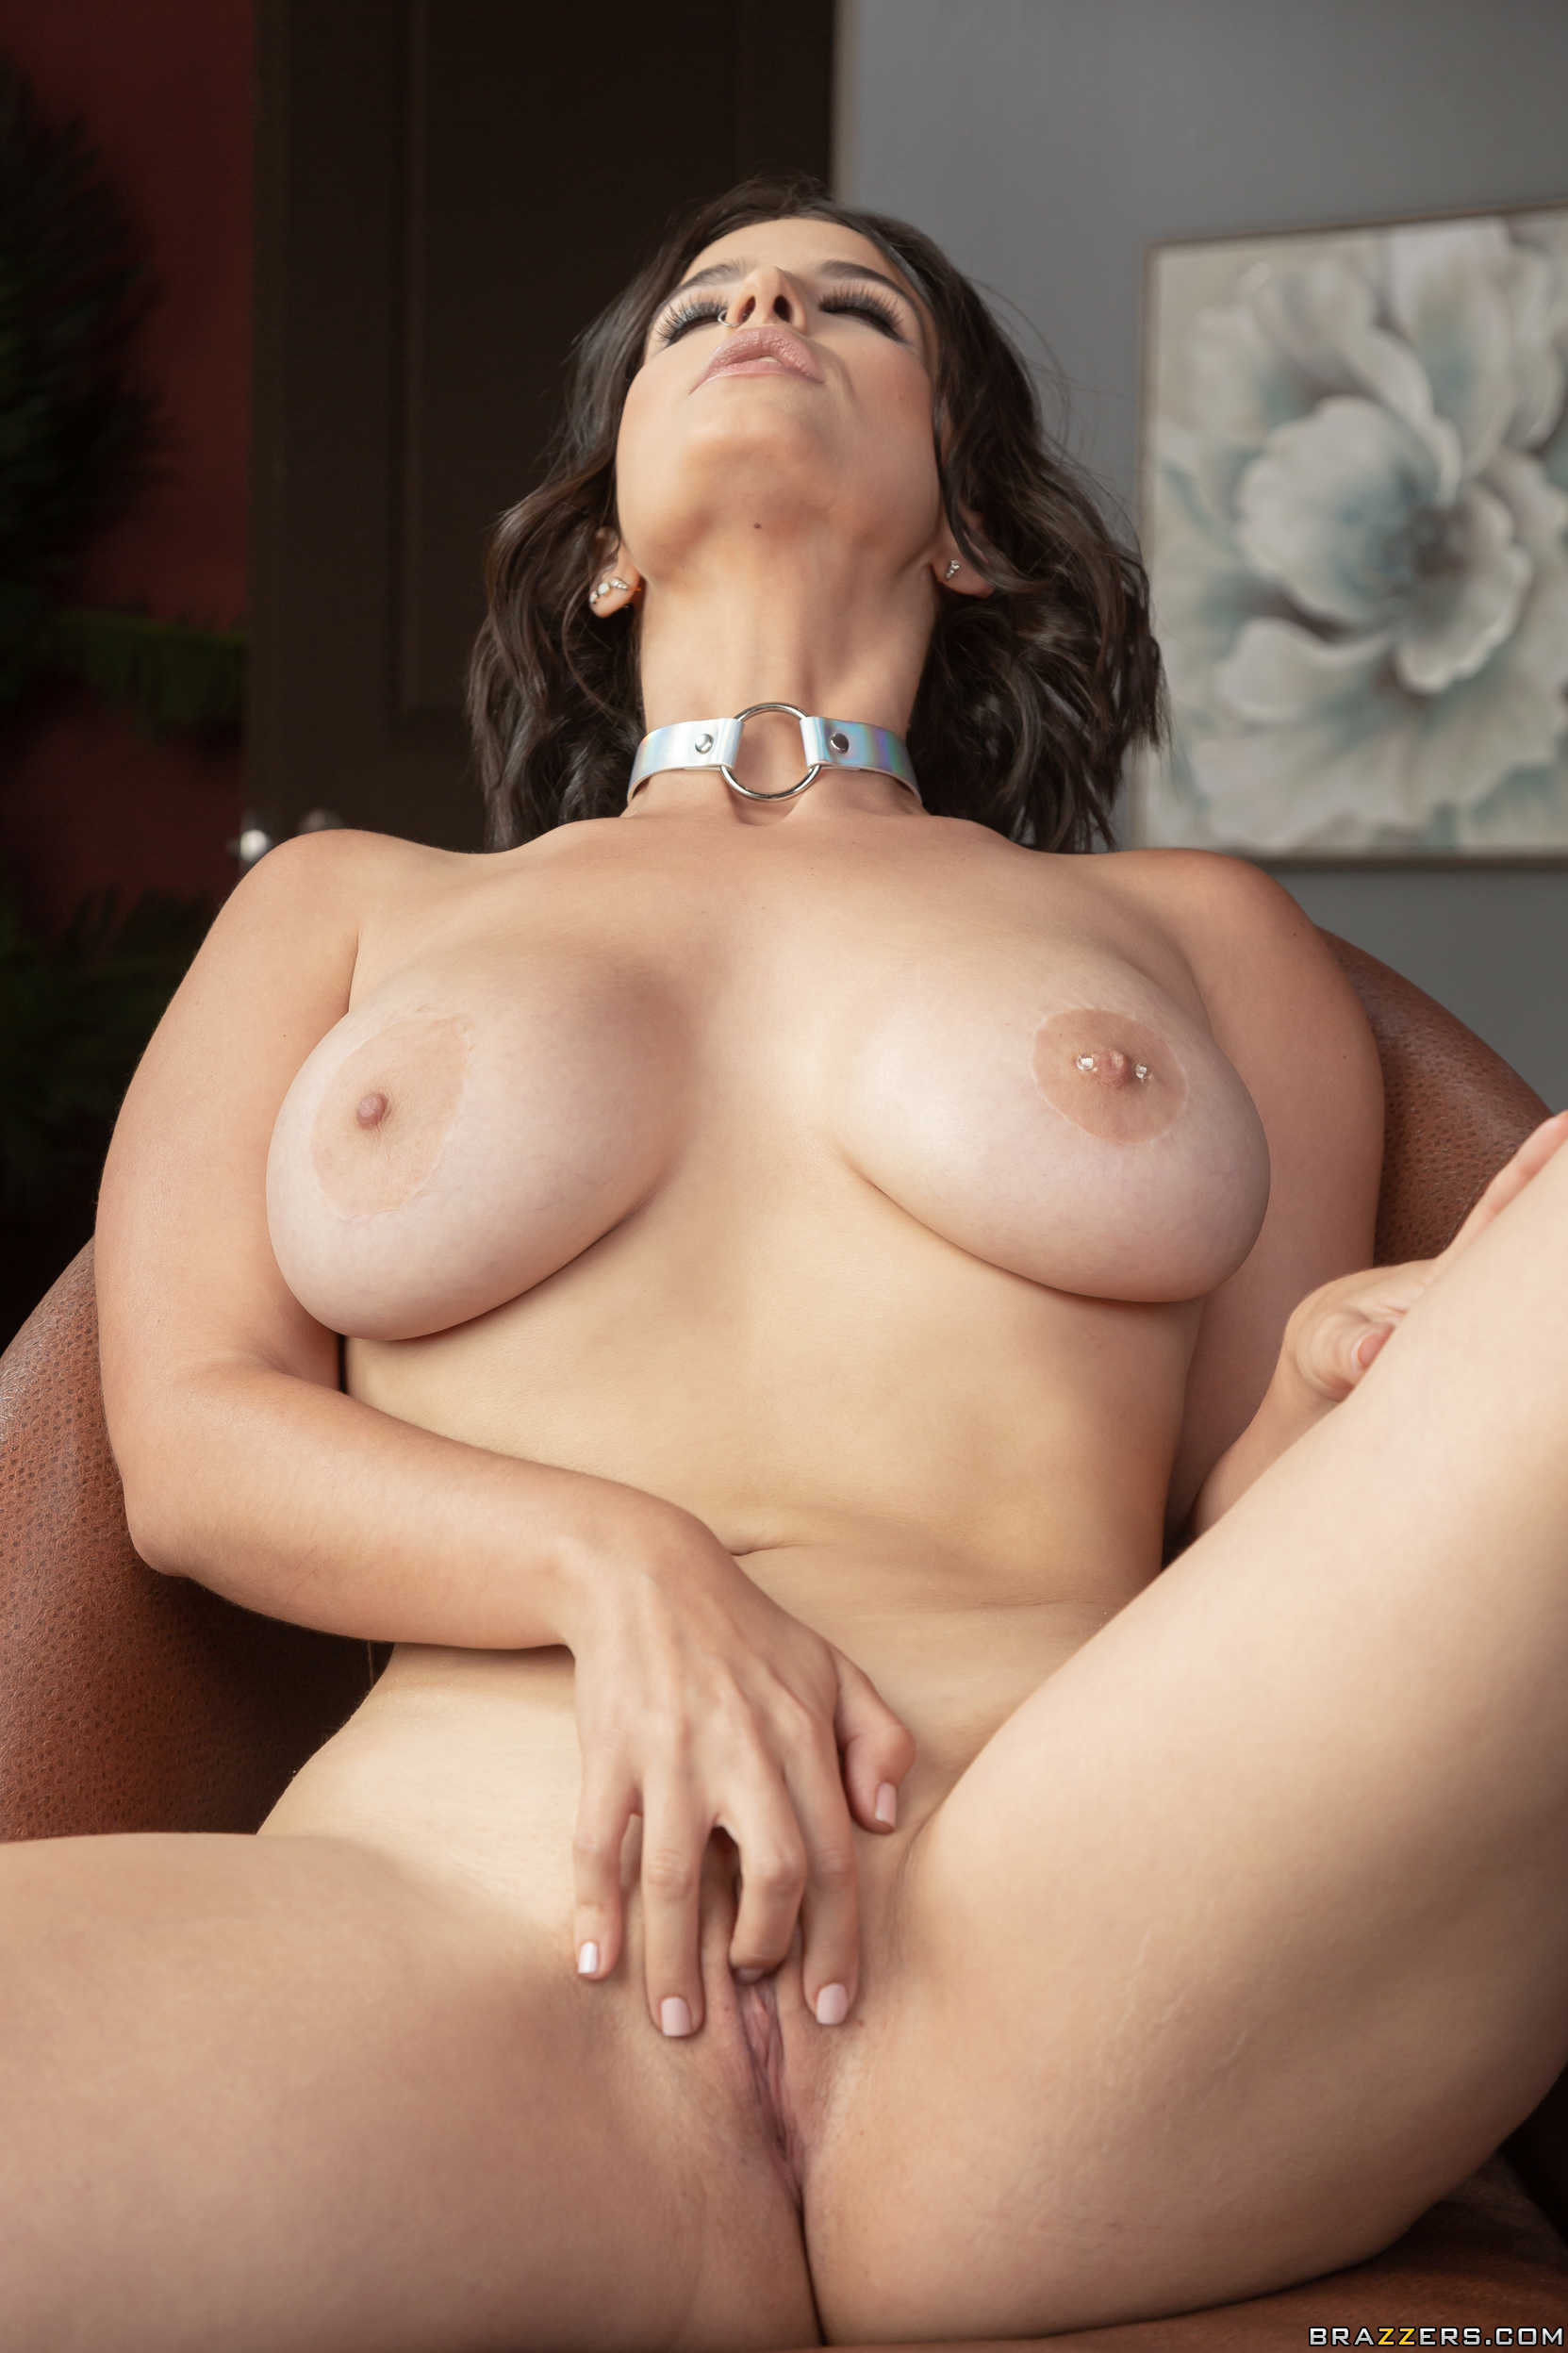 Brazzers La Sirena - An Exotic And Erotic Busty Student ...